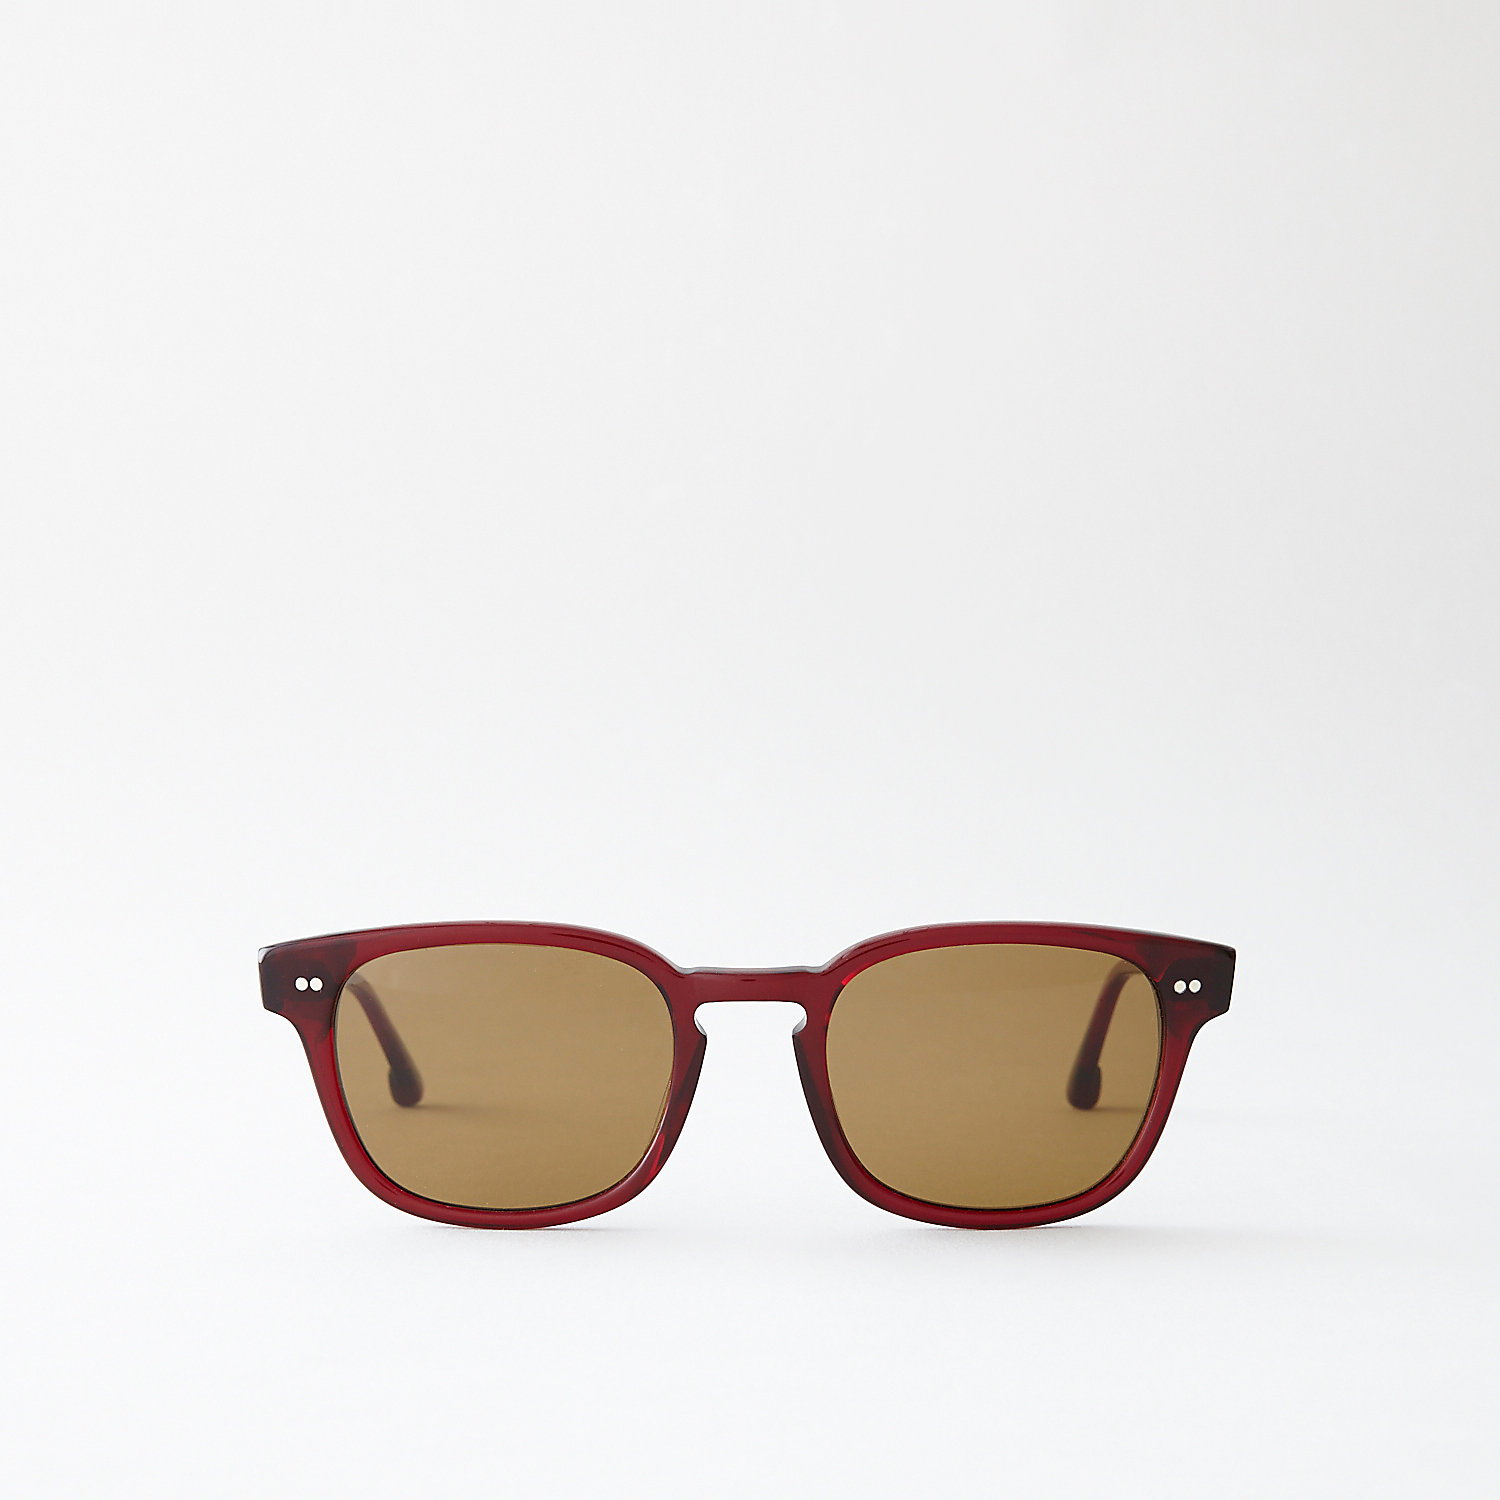 20TH ANNIVERSARY MONROE SUNGLASSES